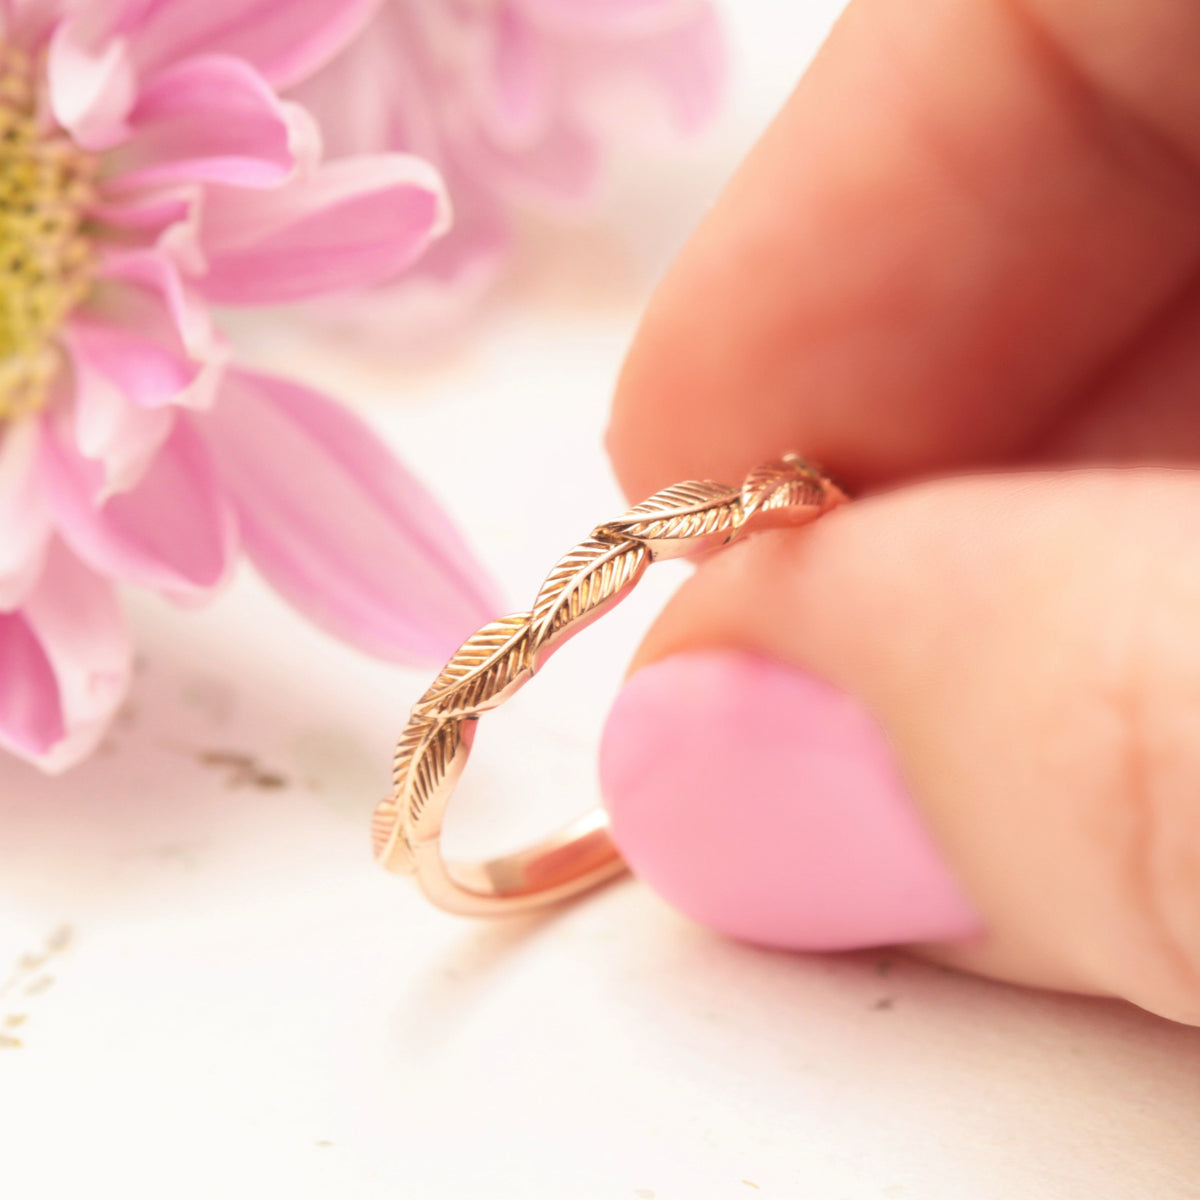 Delicate Gold Wedding Ring Engraved Leaves Wedding Band Organic Wedding Band Leaf Engraved Band Nature Inspired Wedding Ring